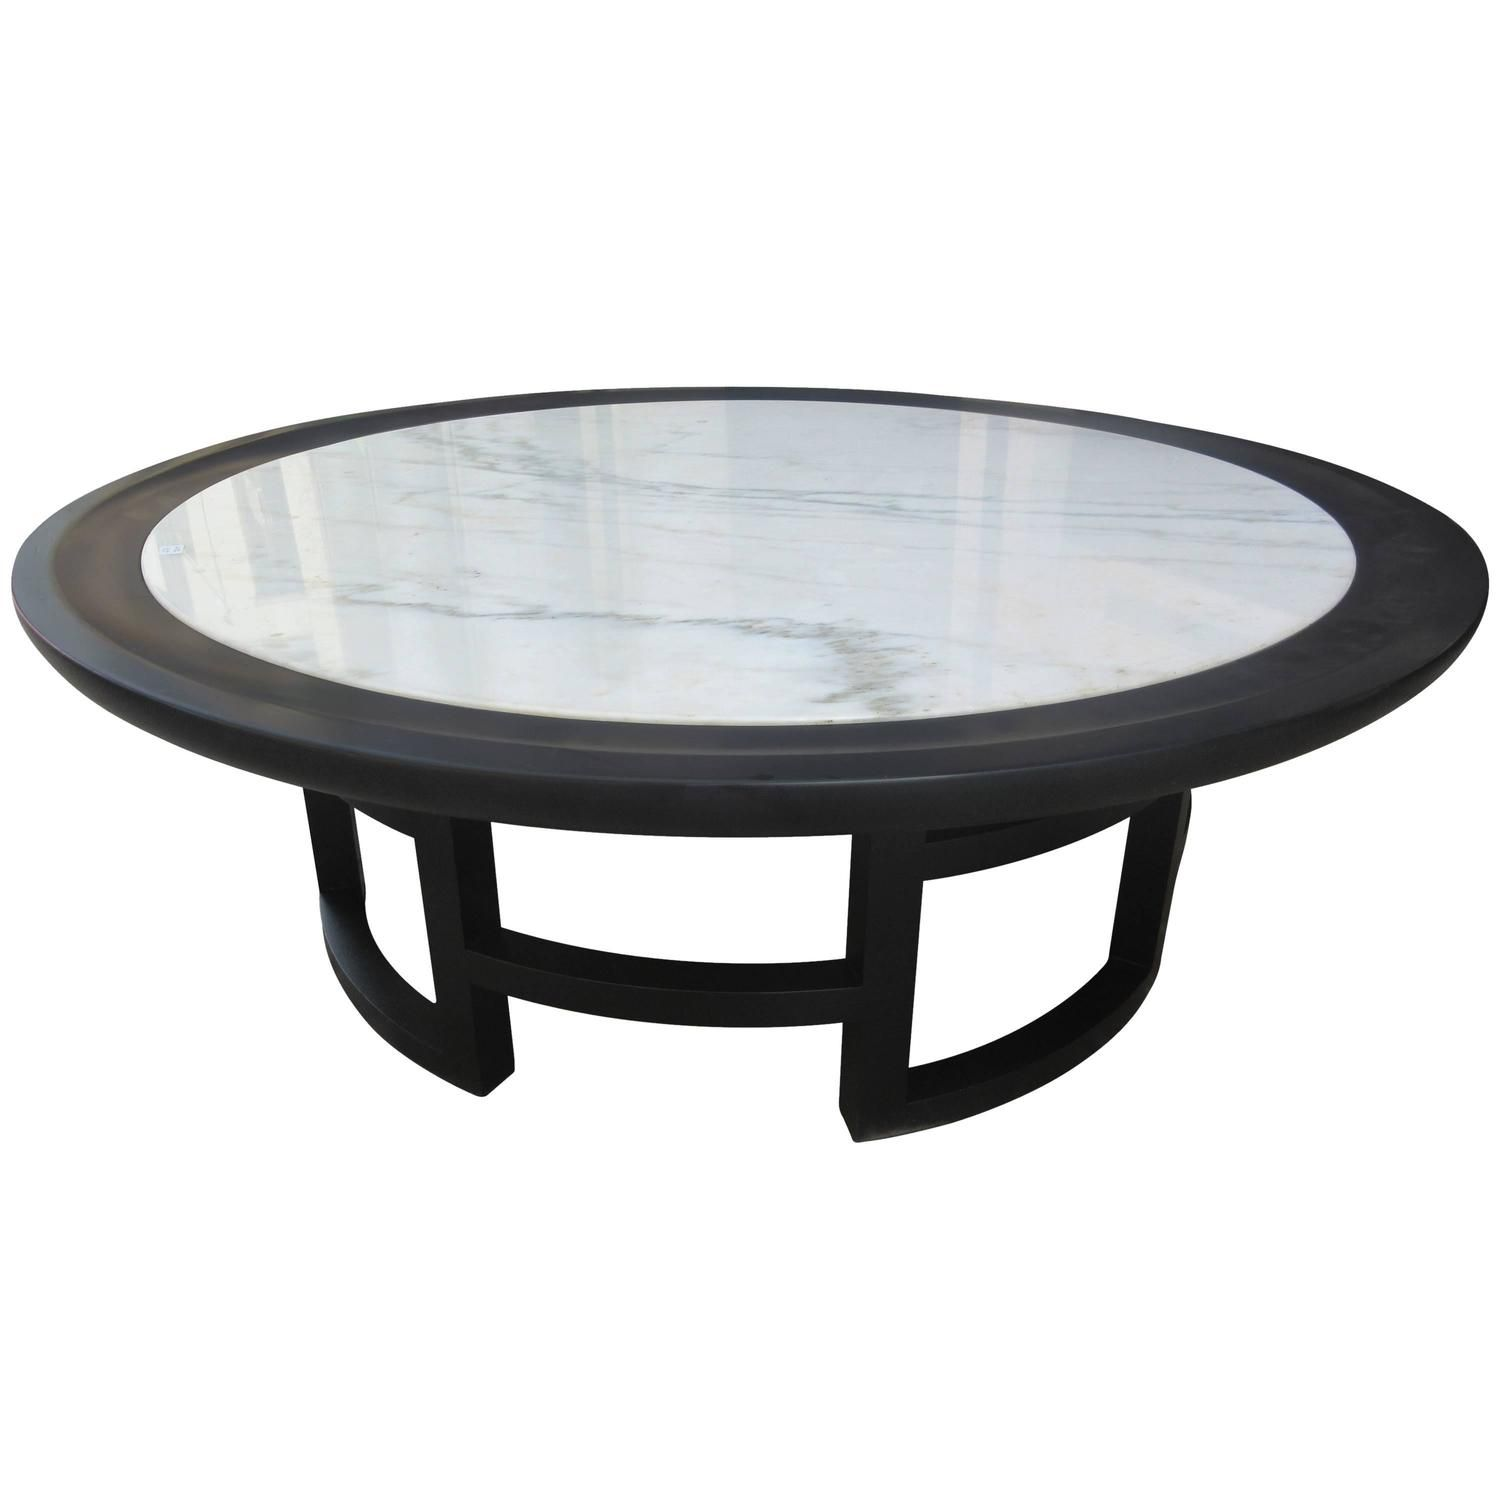 Warsaw Chinese Style Coffee Table Coffee Table Marble Top Coffee Table Table [ 1500 x 1500 Pixel ]